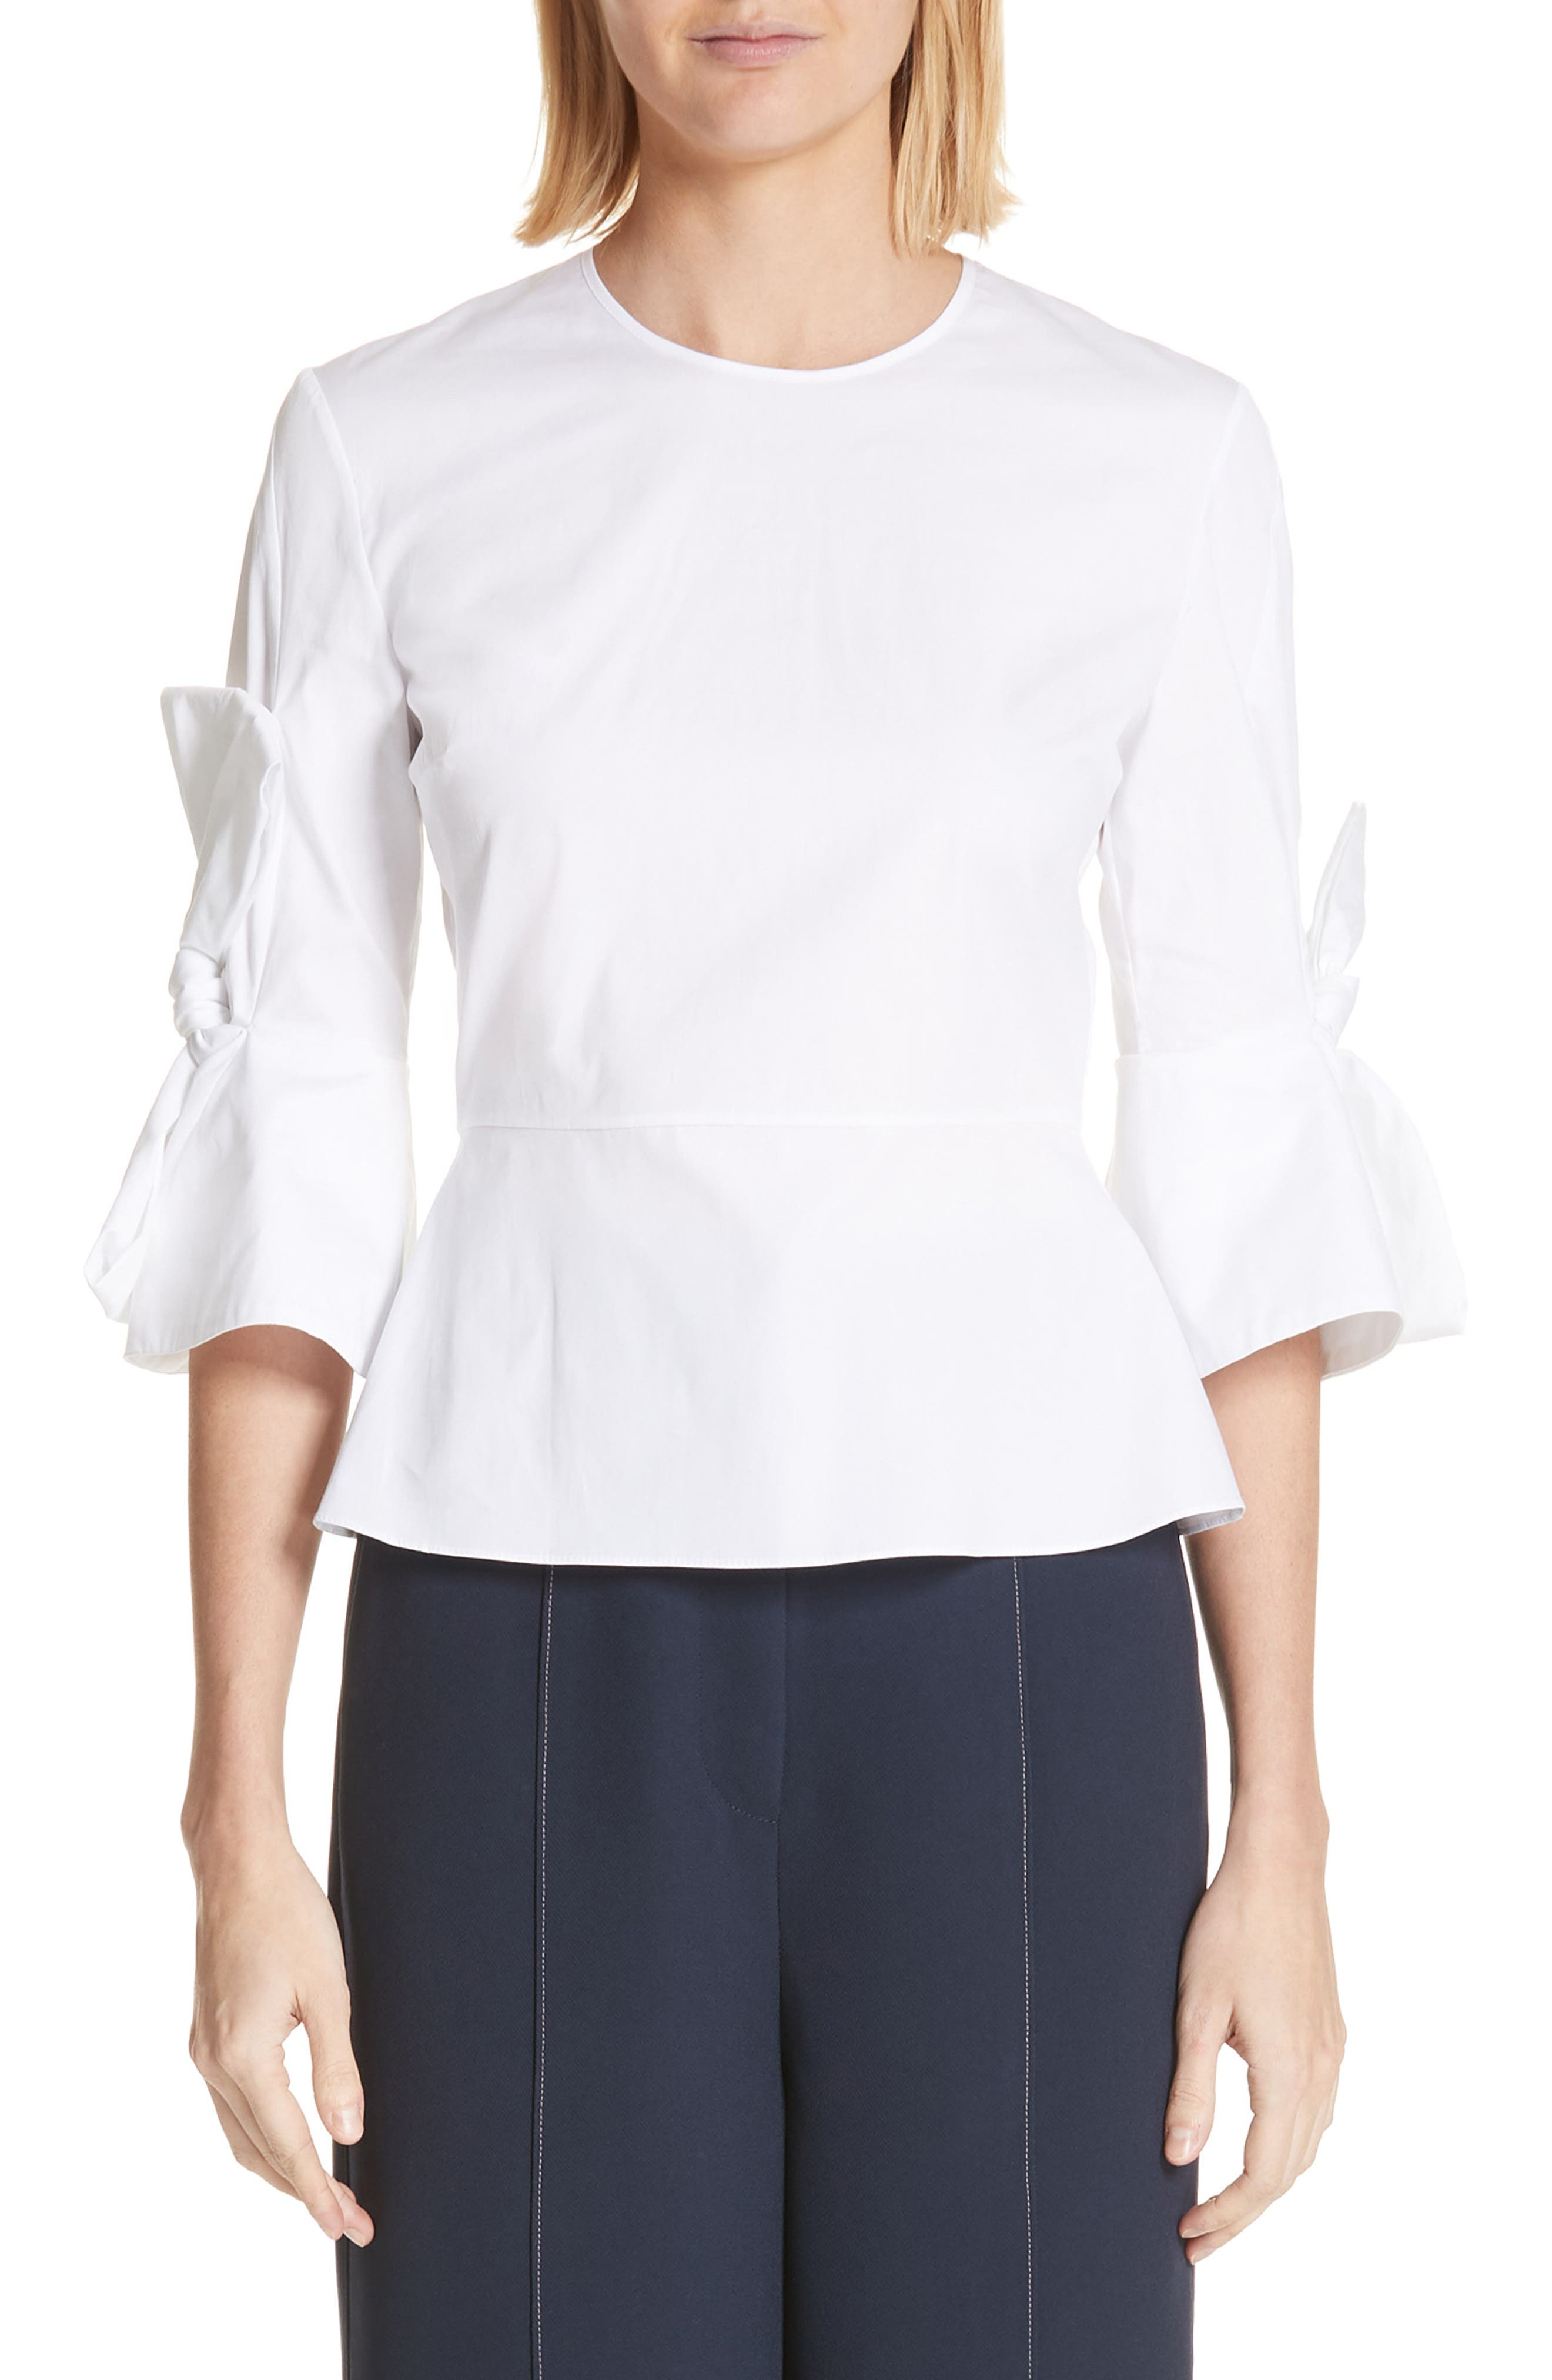 Kemi Top,                         Main,                         color, White